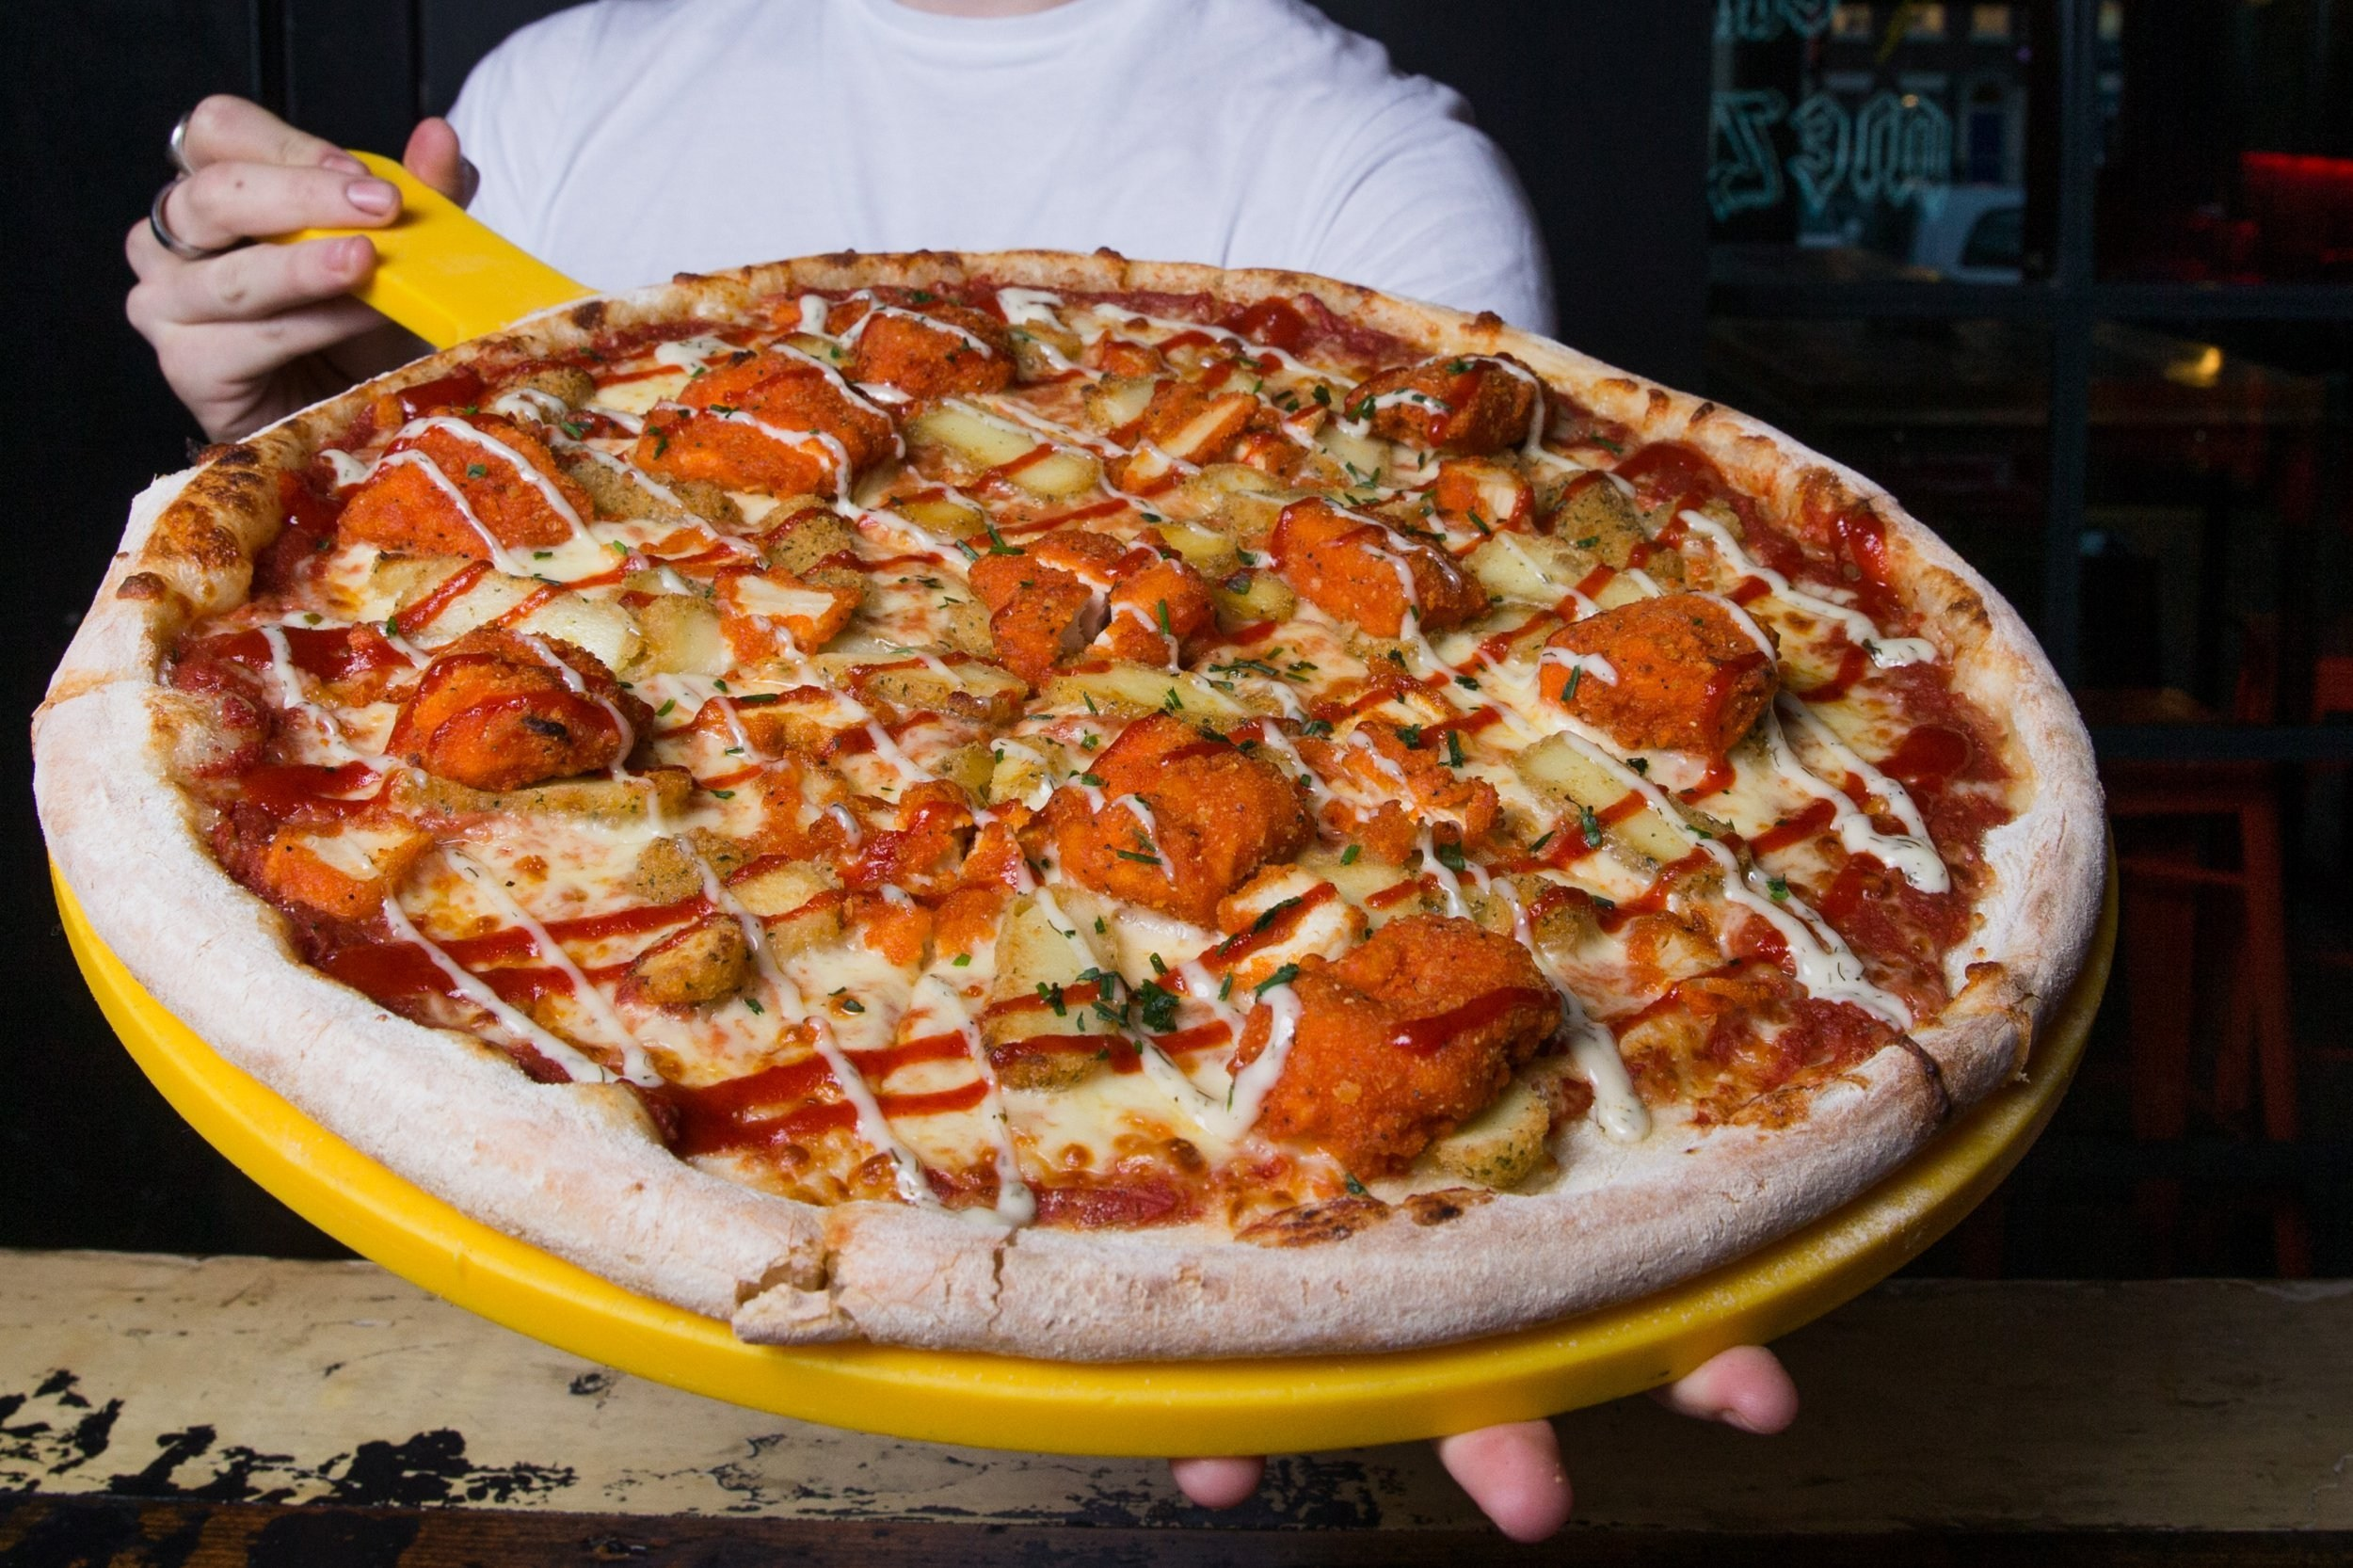 A chicken nugget pizza is now a thing thanks to this restaurant